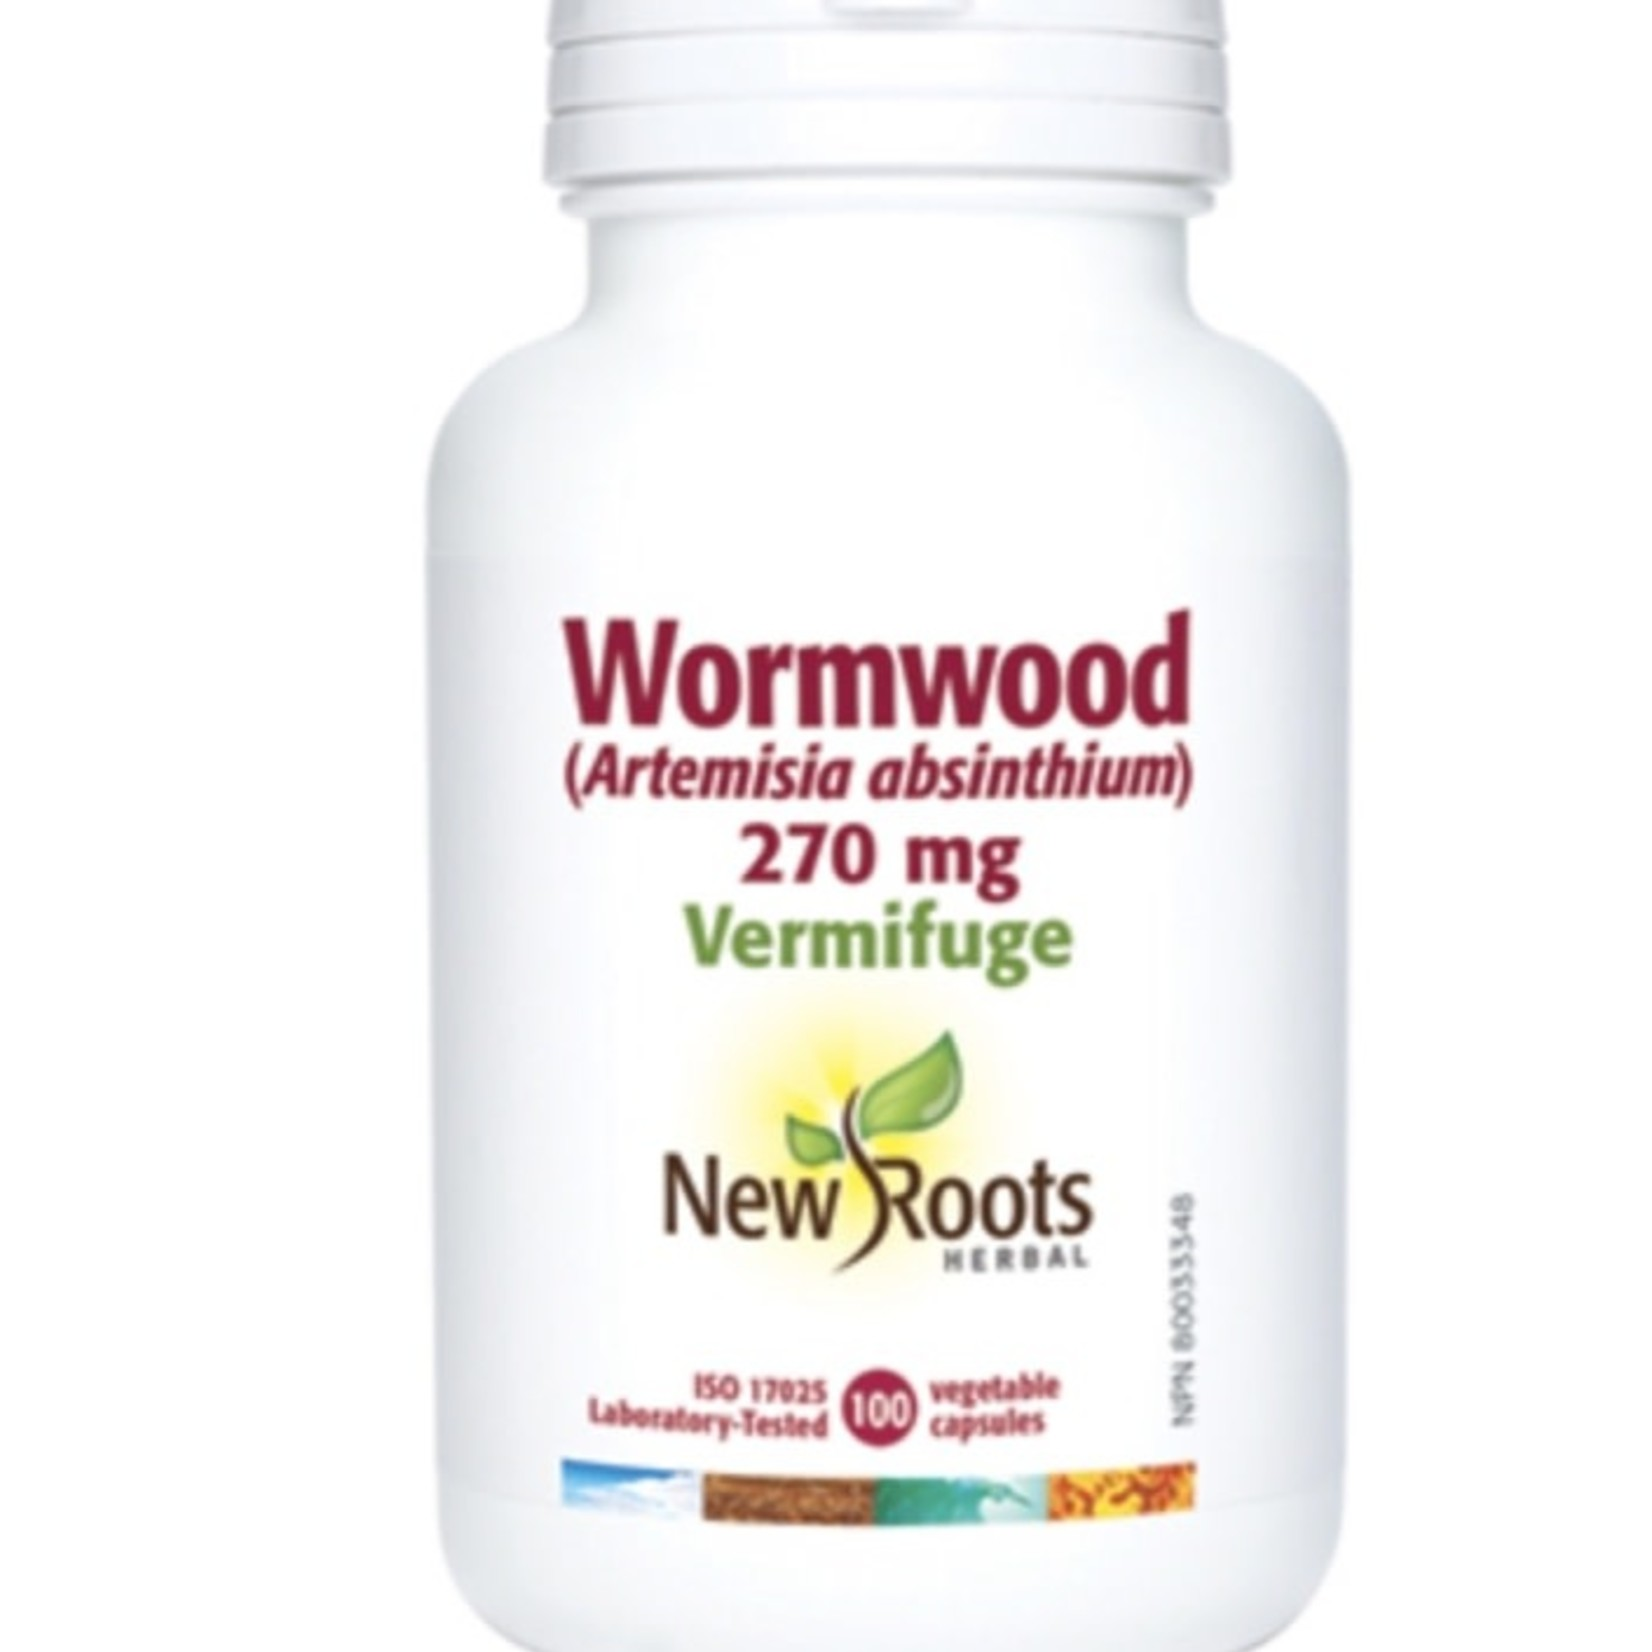 New Roots New Roots Wormwood 270mg 100 caps